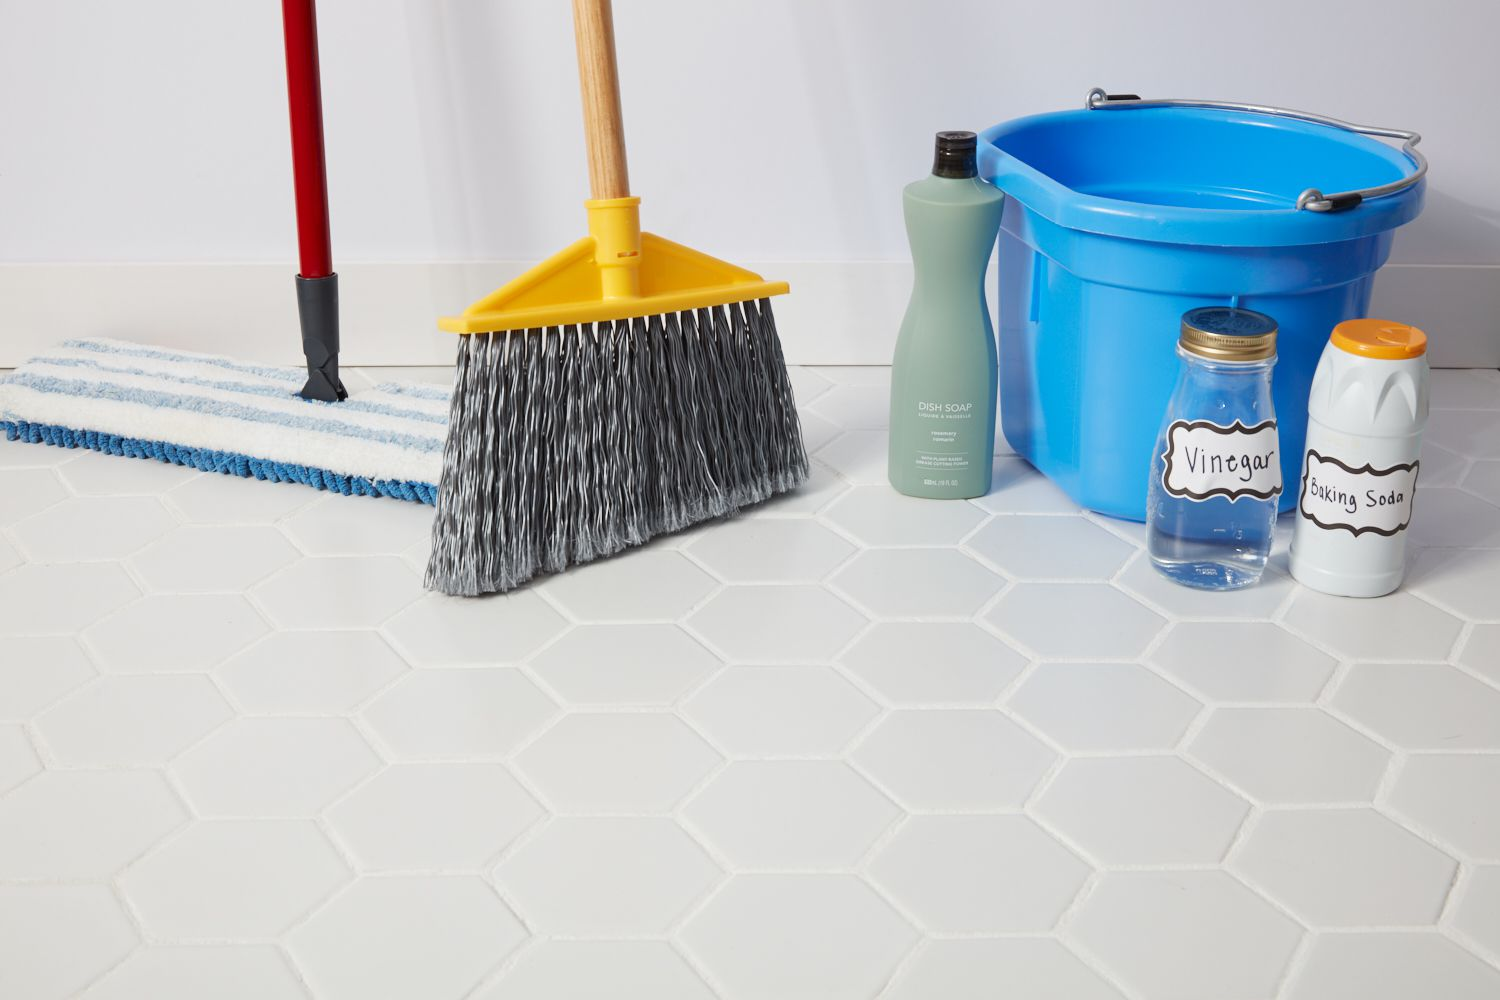 Tile cleaning supplies